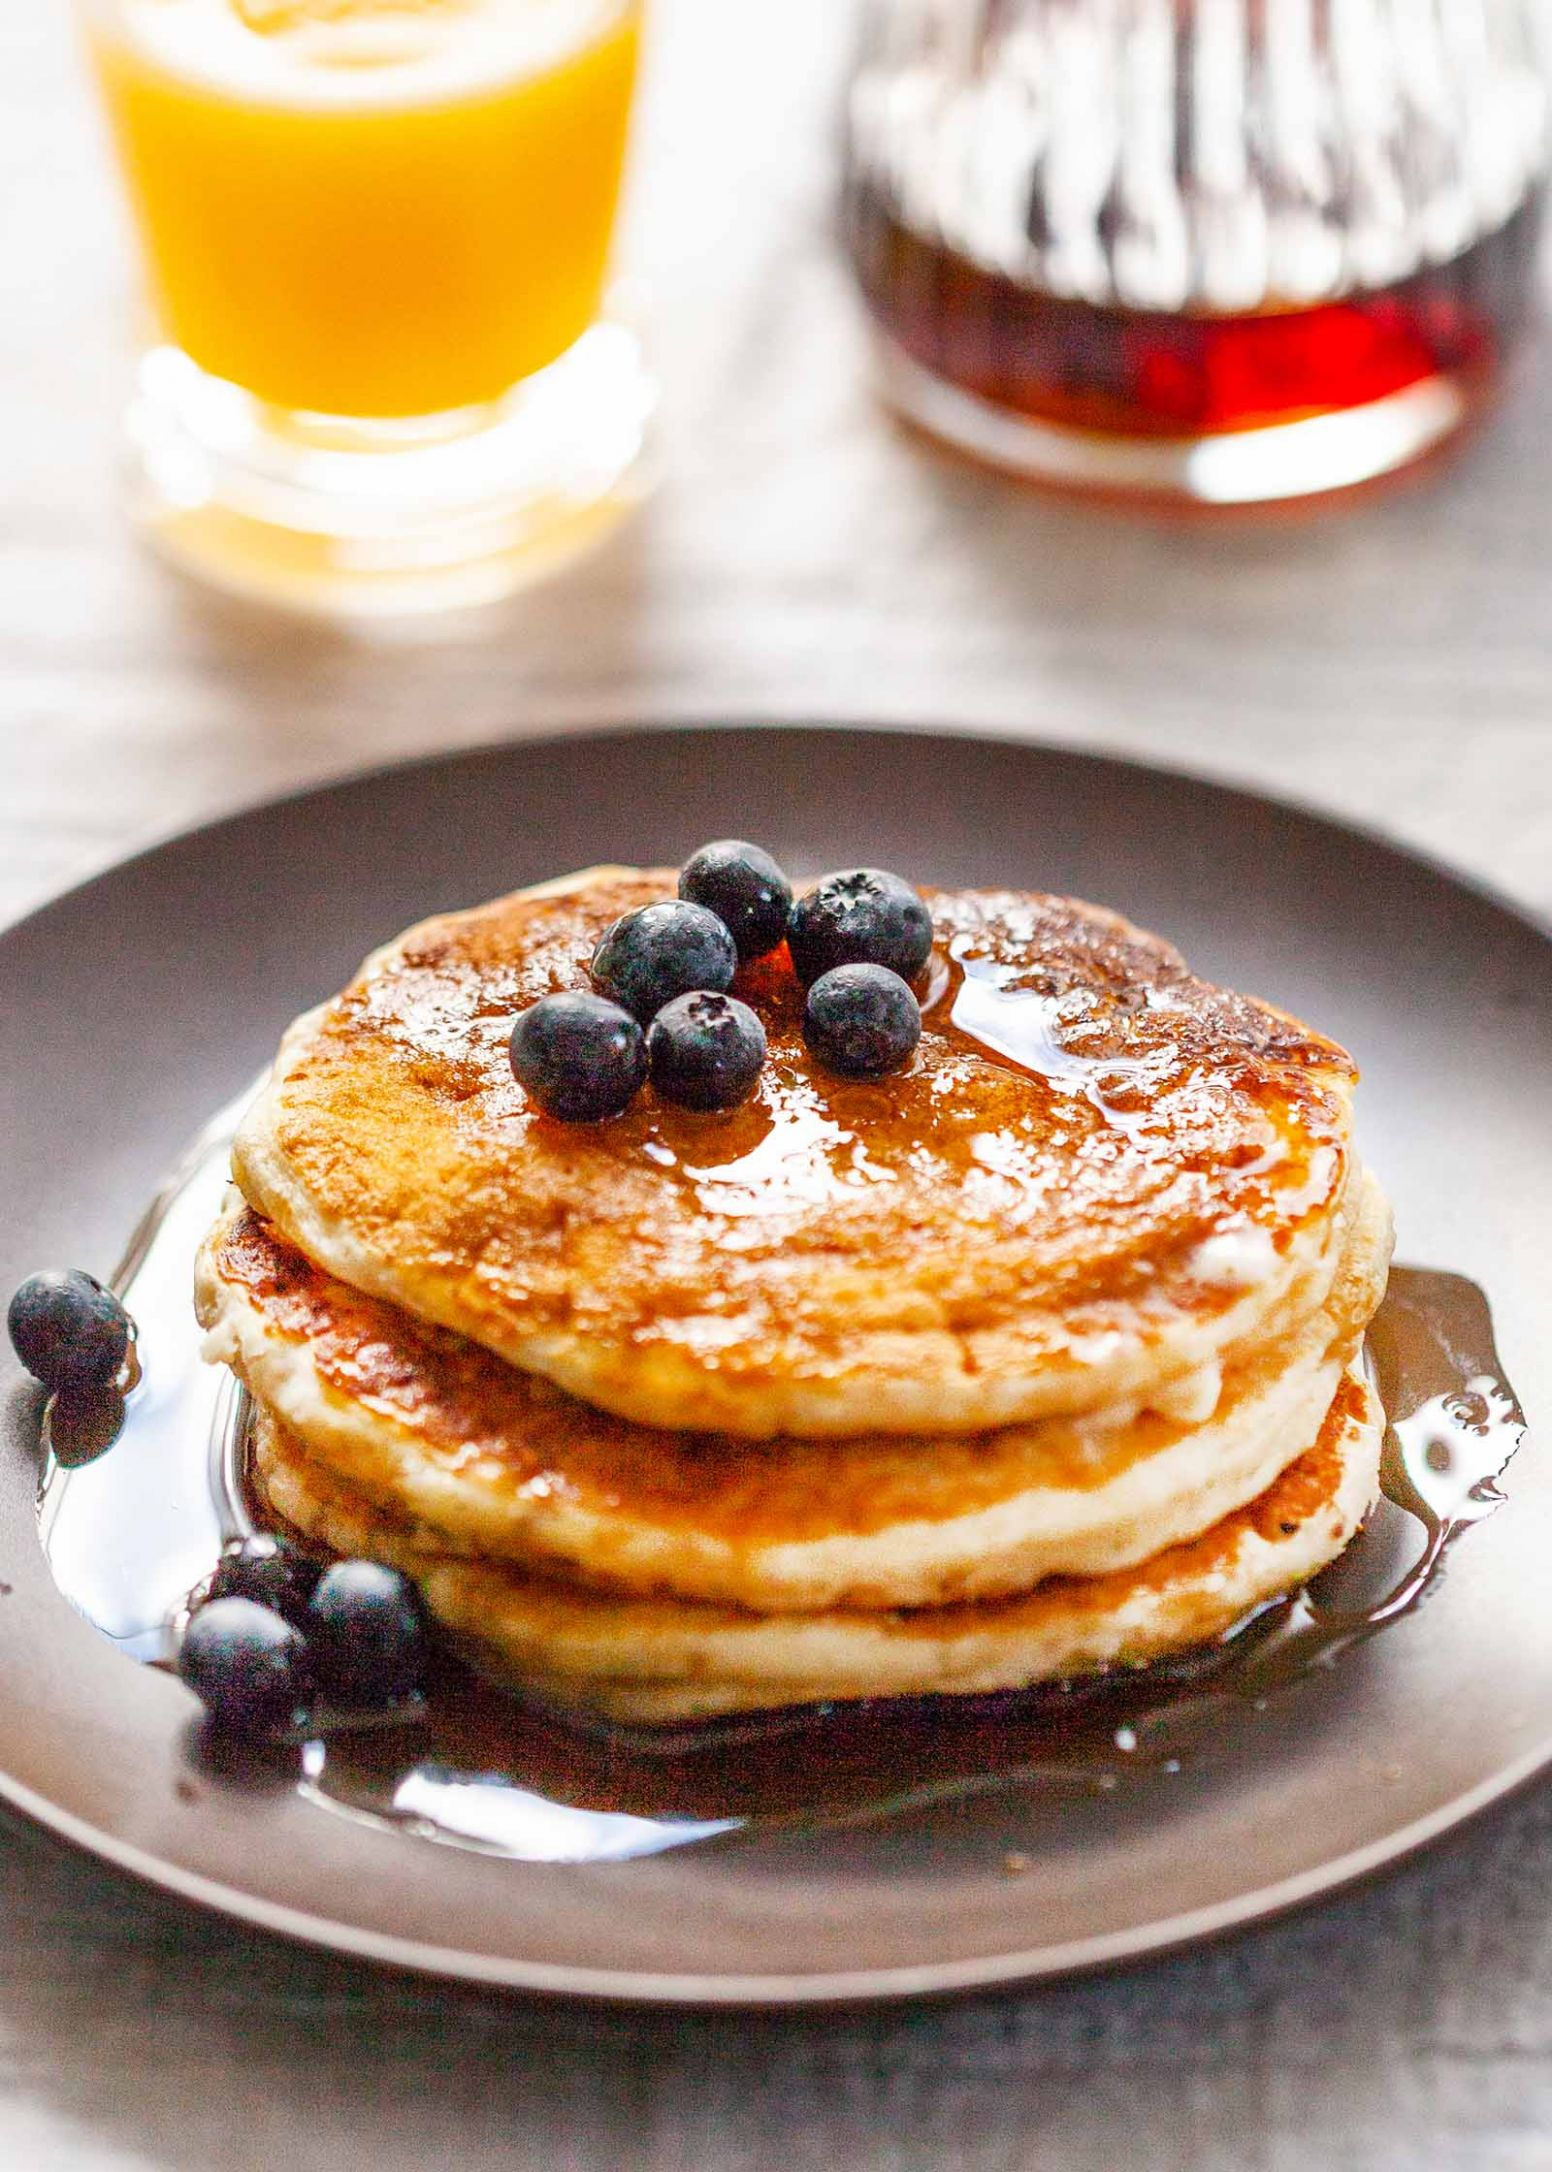 How to Make Fluffy Buttermilk Pancakes - Simple Recipes Pancakes